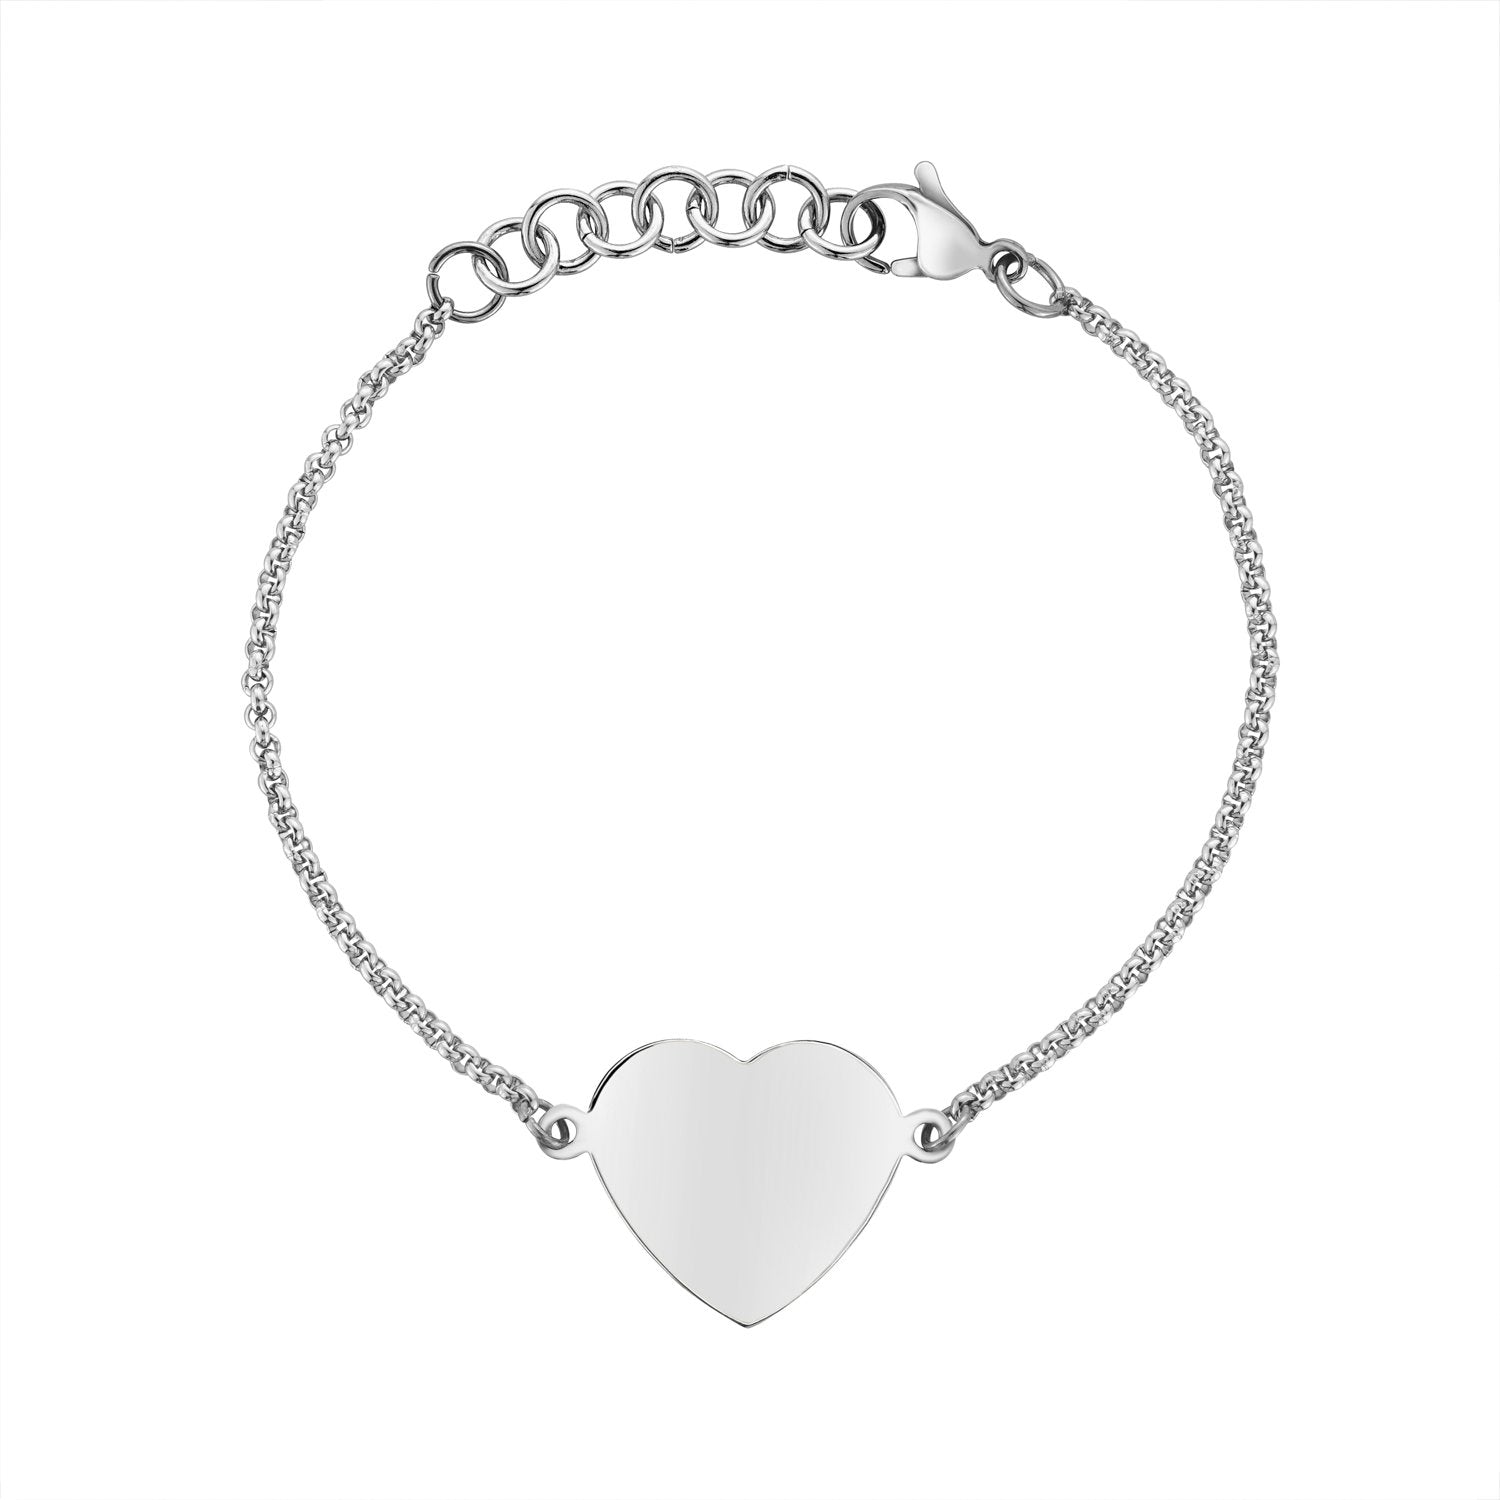 Women Bracelet - Personalized Stainless Steel Heart Bracelet - Engravable